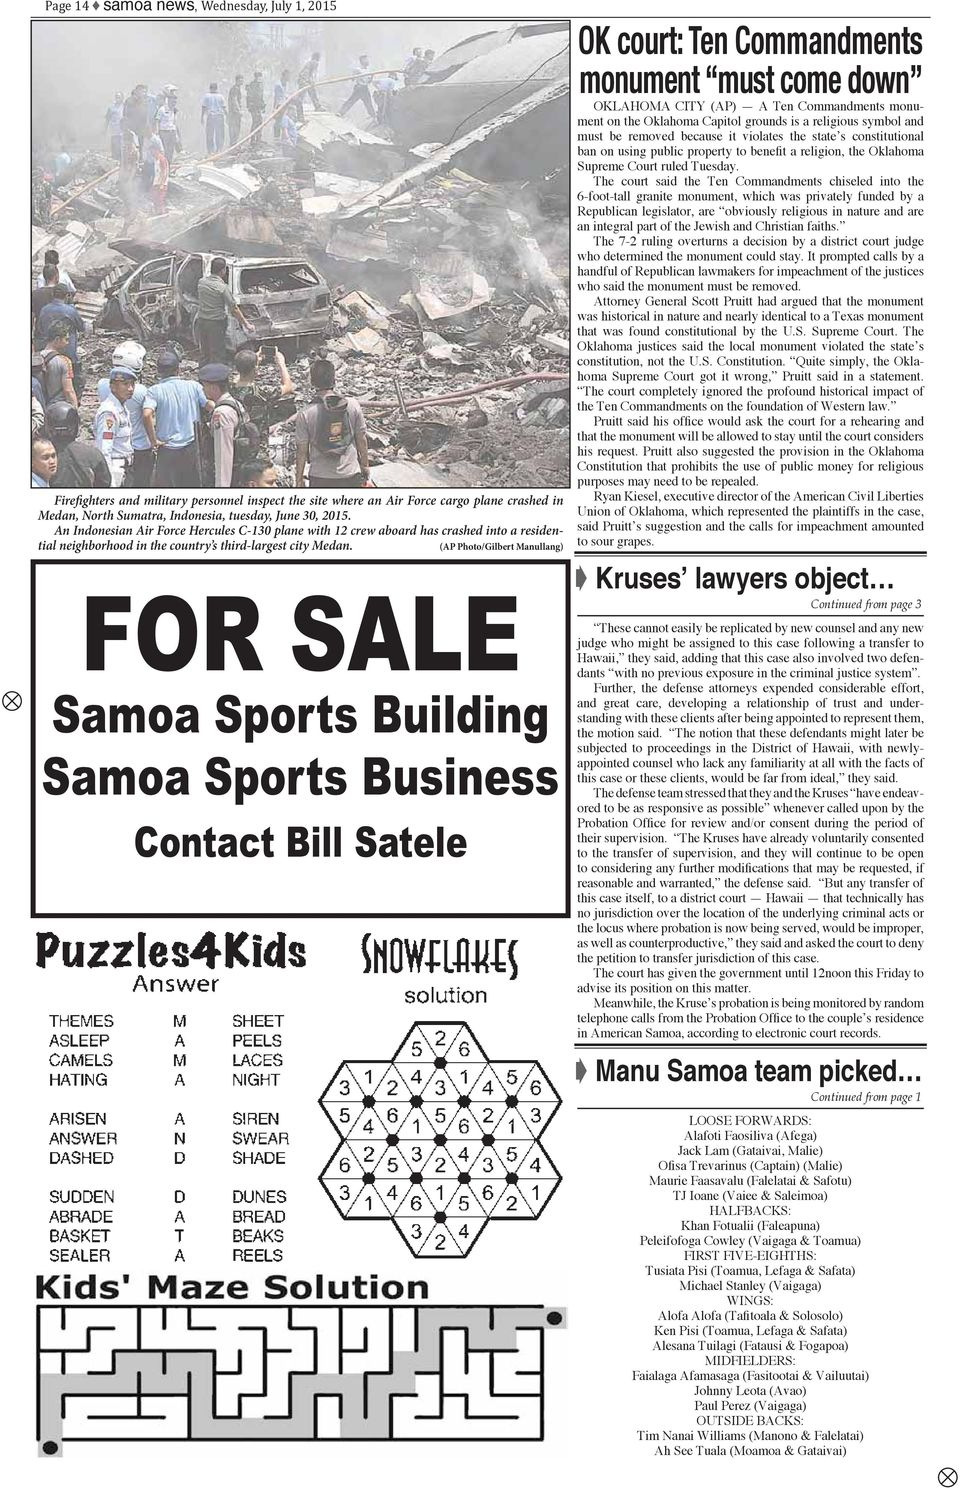 (AP Photo/Gilbert Manullang) FOR SALE Samoa Sports Building Samoa Sports Business Contact Bill Satele OK court: Ten Commandments monument must come down OKLAHOMA CITY (AP) A Ten Commandments monument